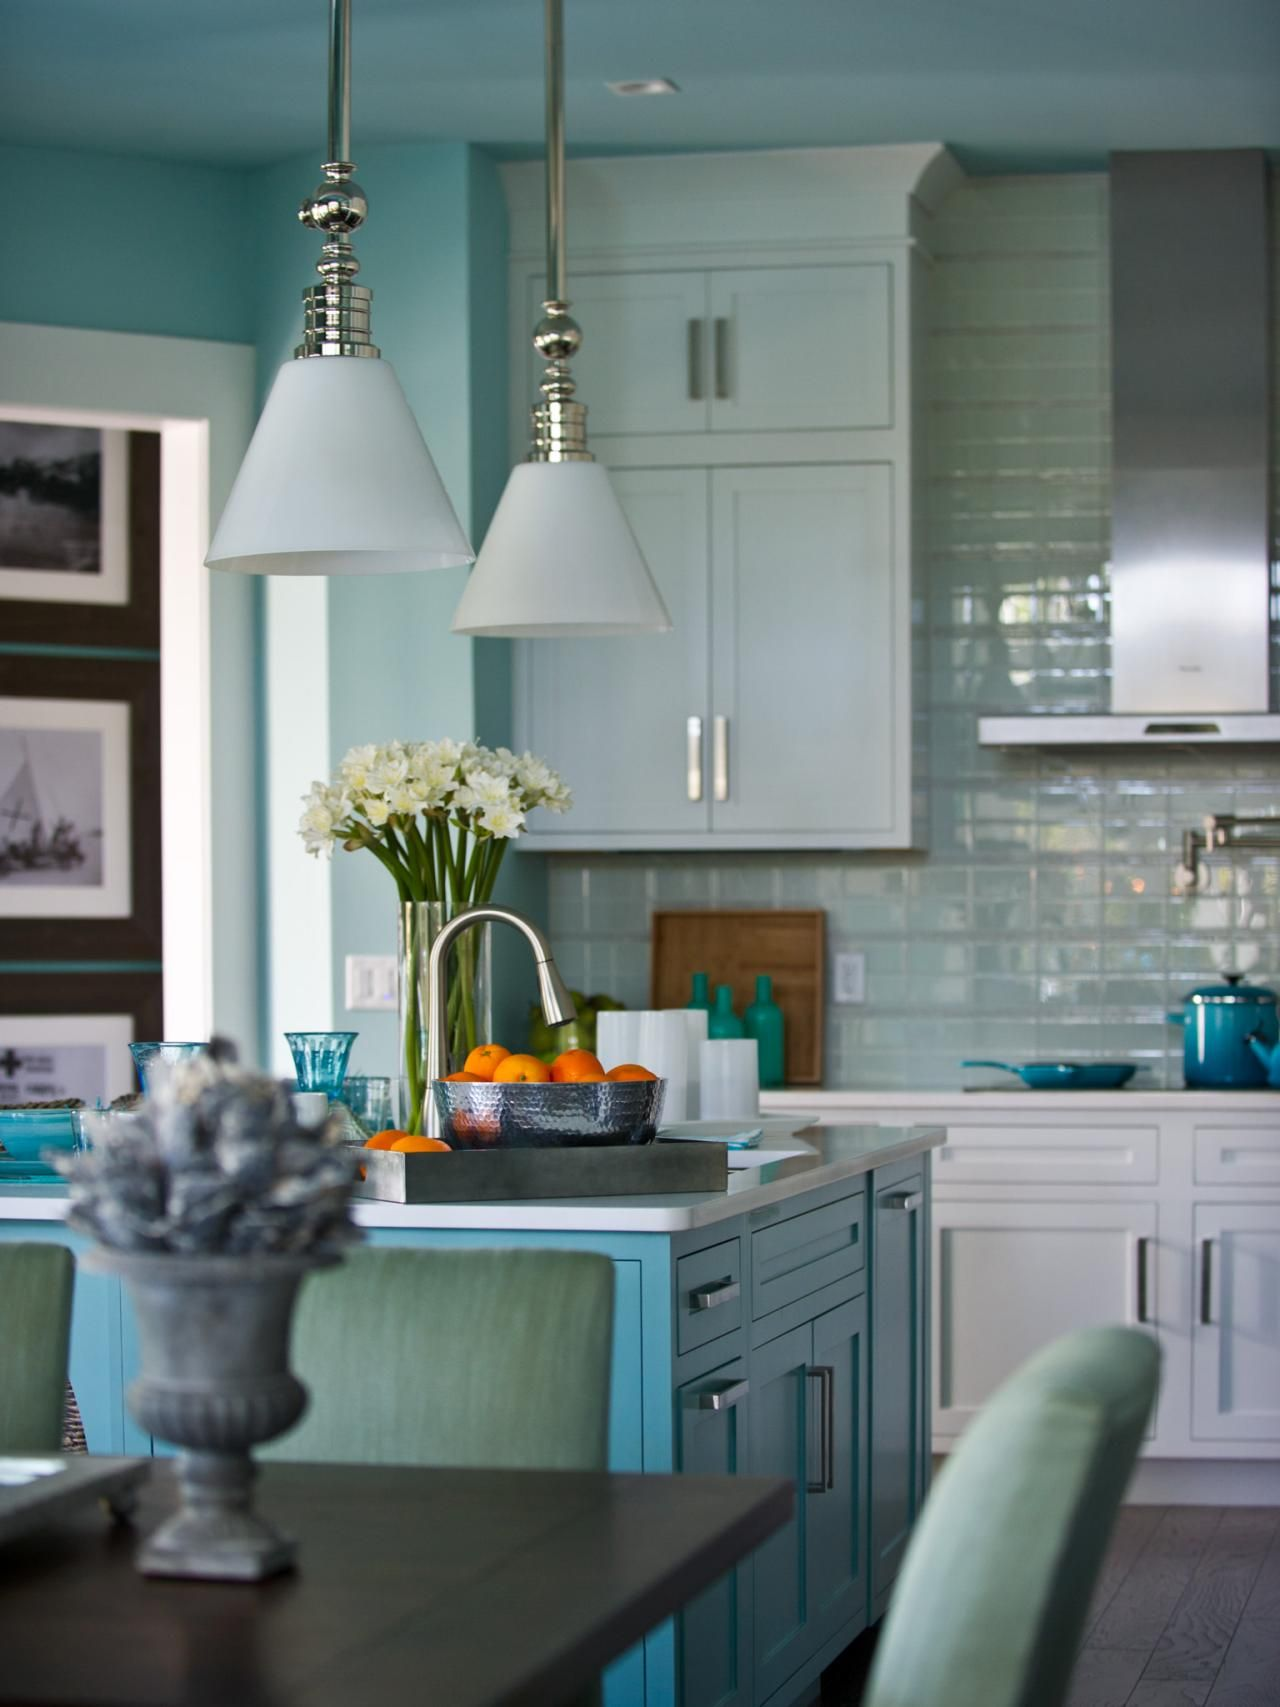 Smart Home 2013: Artistic View | Textures and colors | Pinterest ...